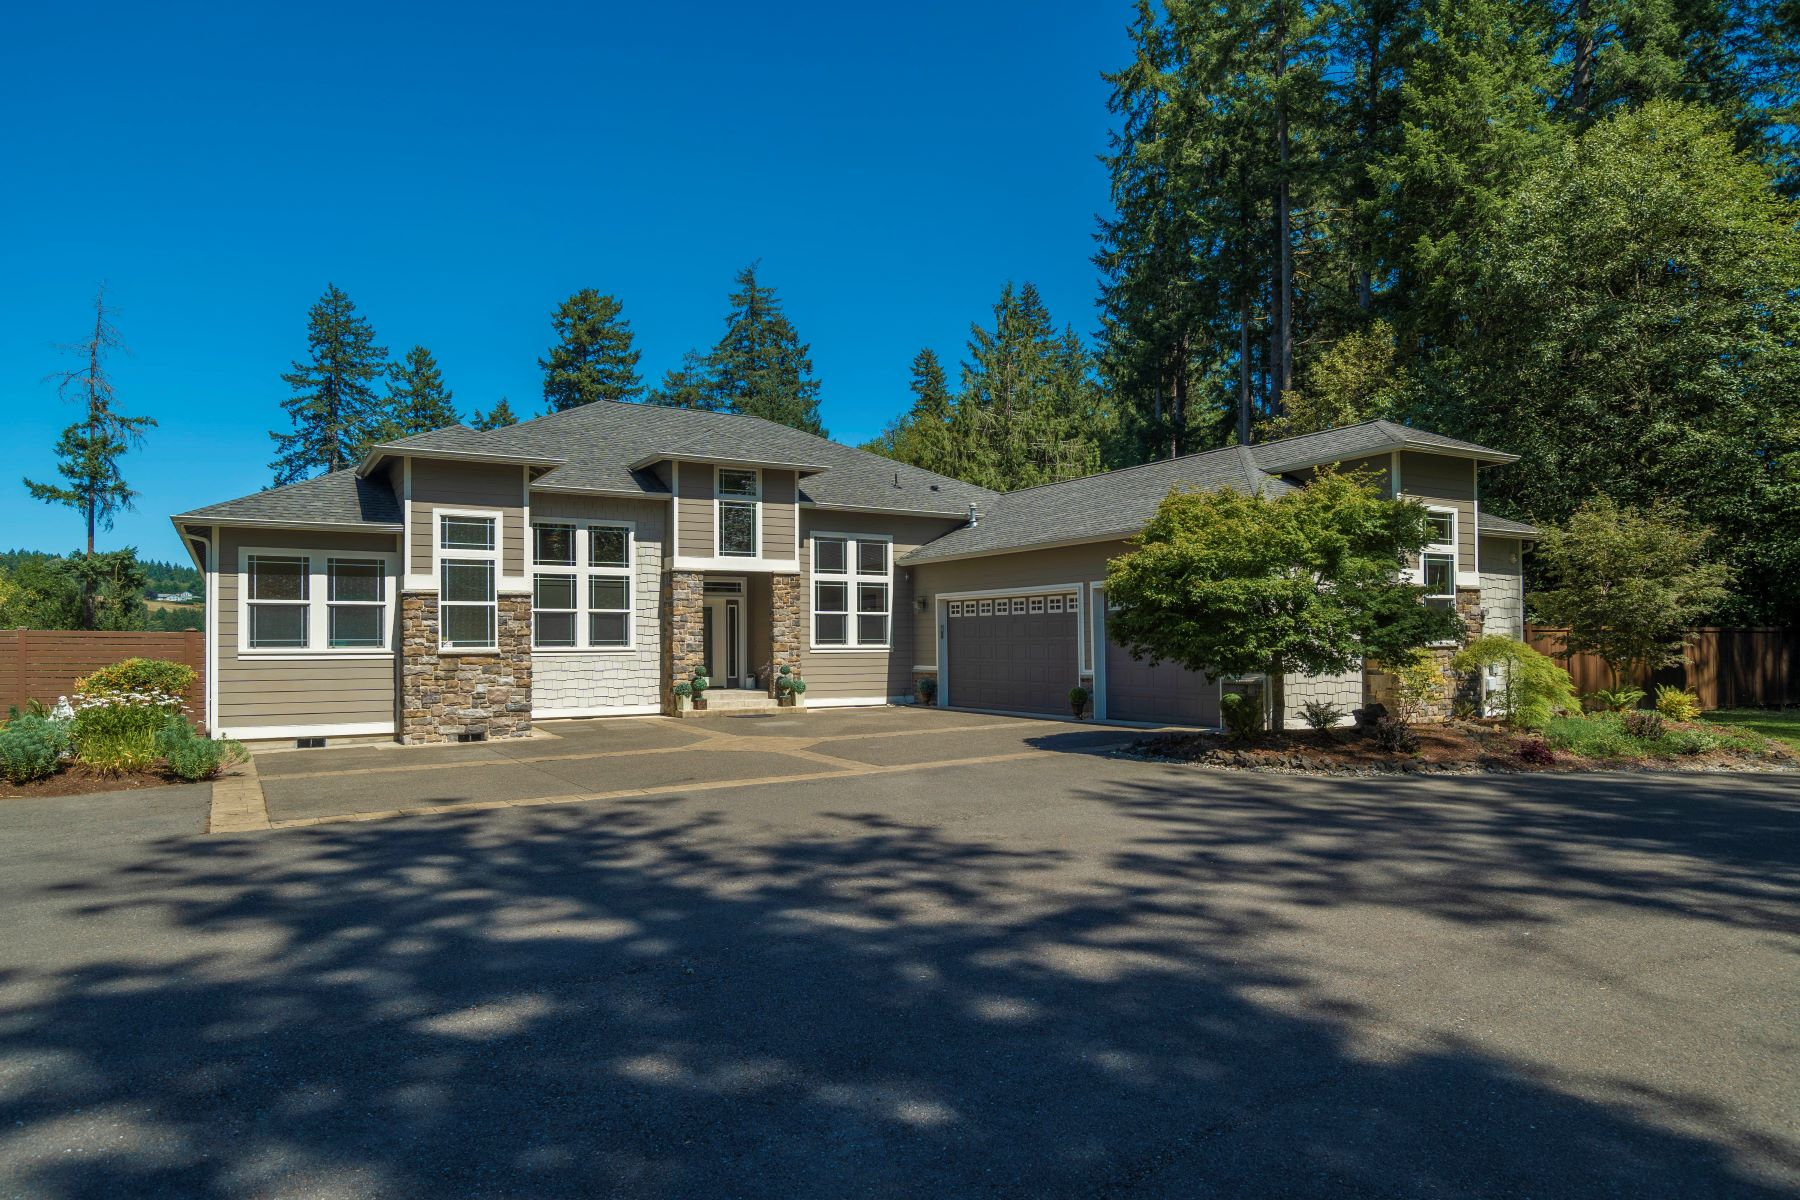 Single Family Homes for Sale at Madrona Beach Lifestyler 1026 Madrona Beach Rd NW East Olympia, Washington 98502 United States